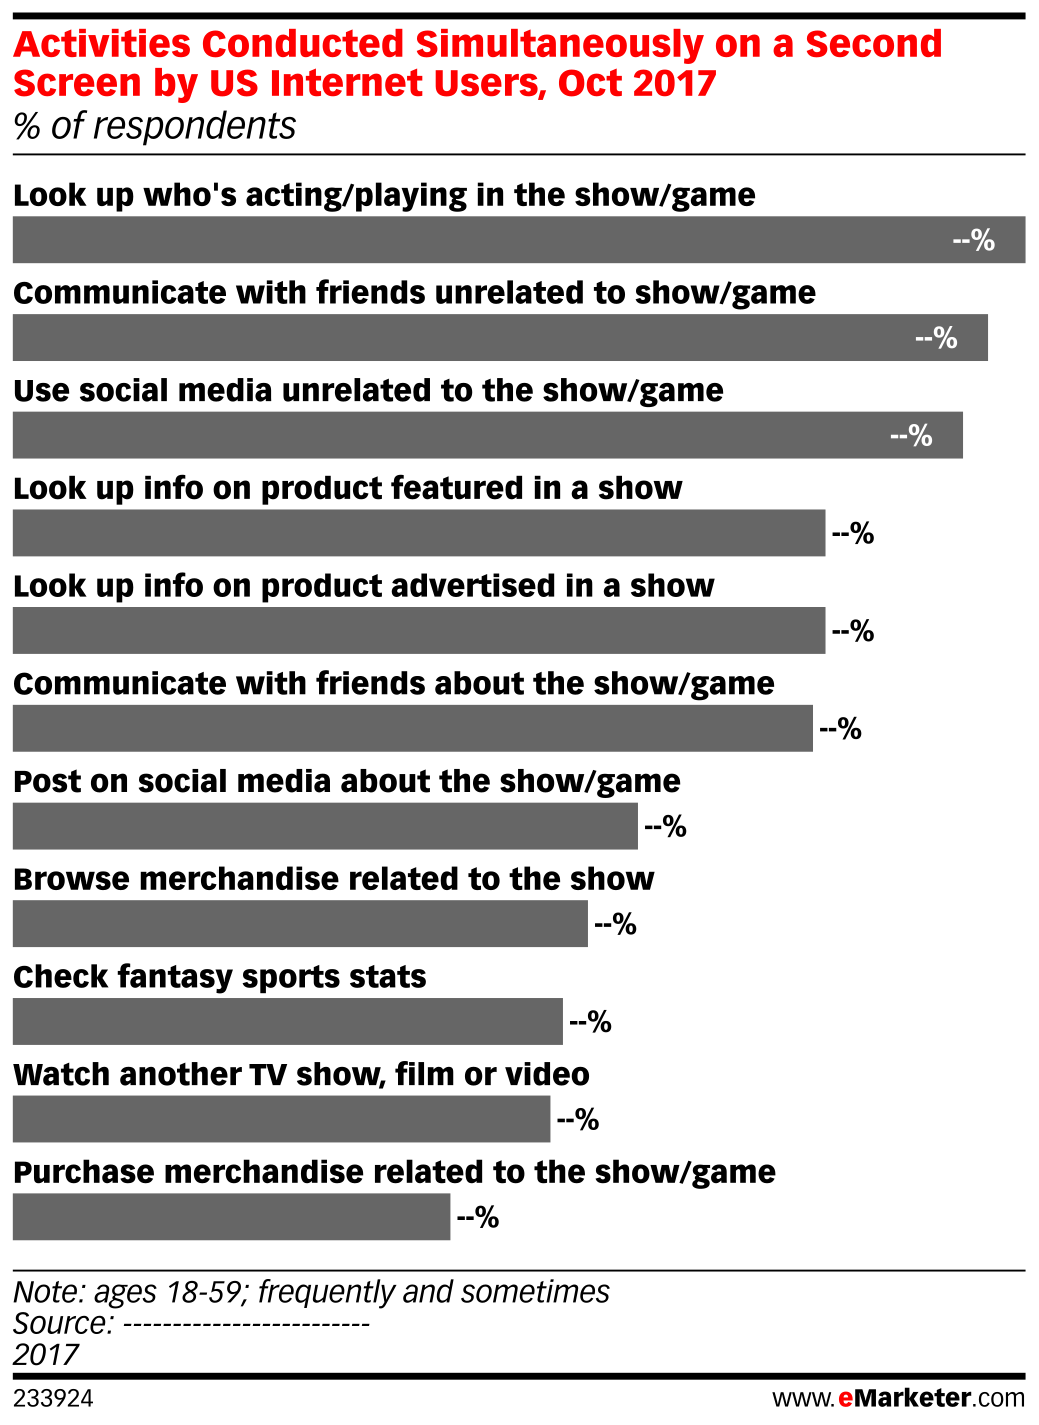 Activities Conducted Simultaneously on a Second Screen by US Internet Users, Oct 2017 (% of respondents)